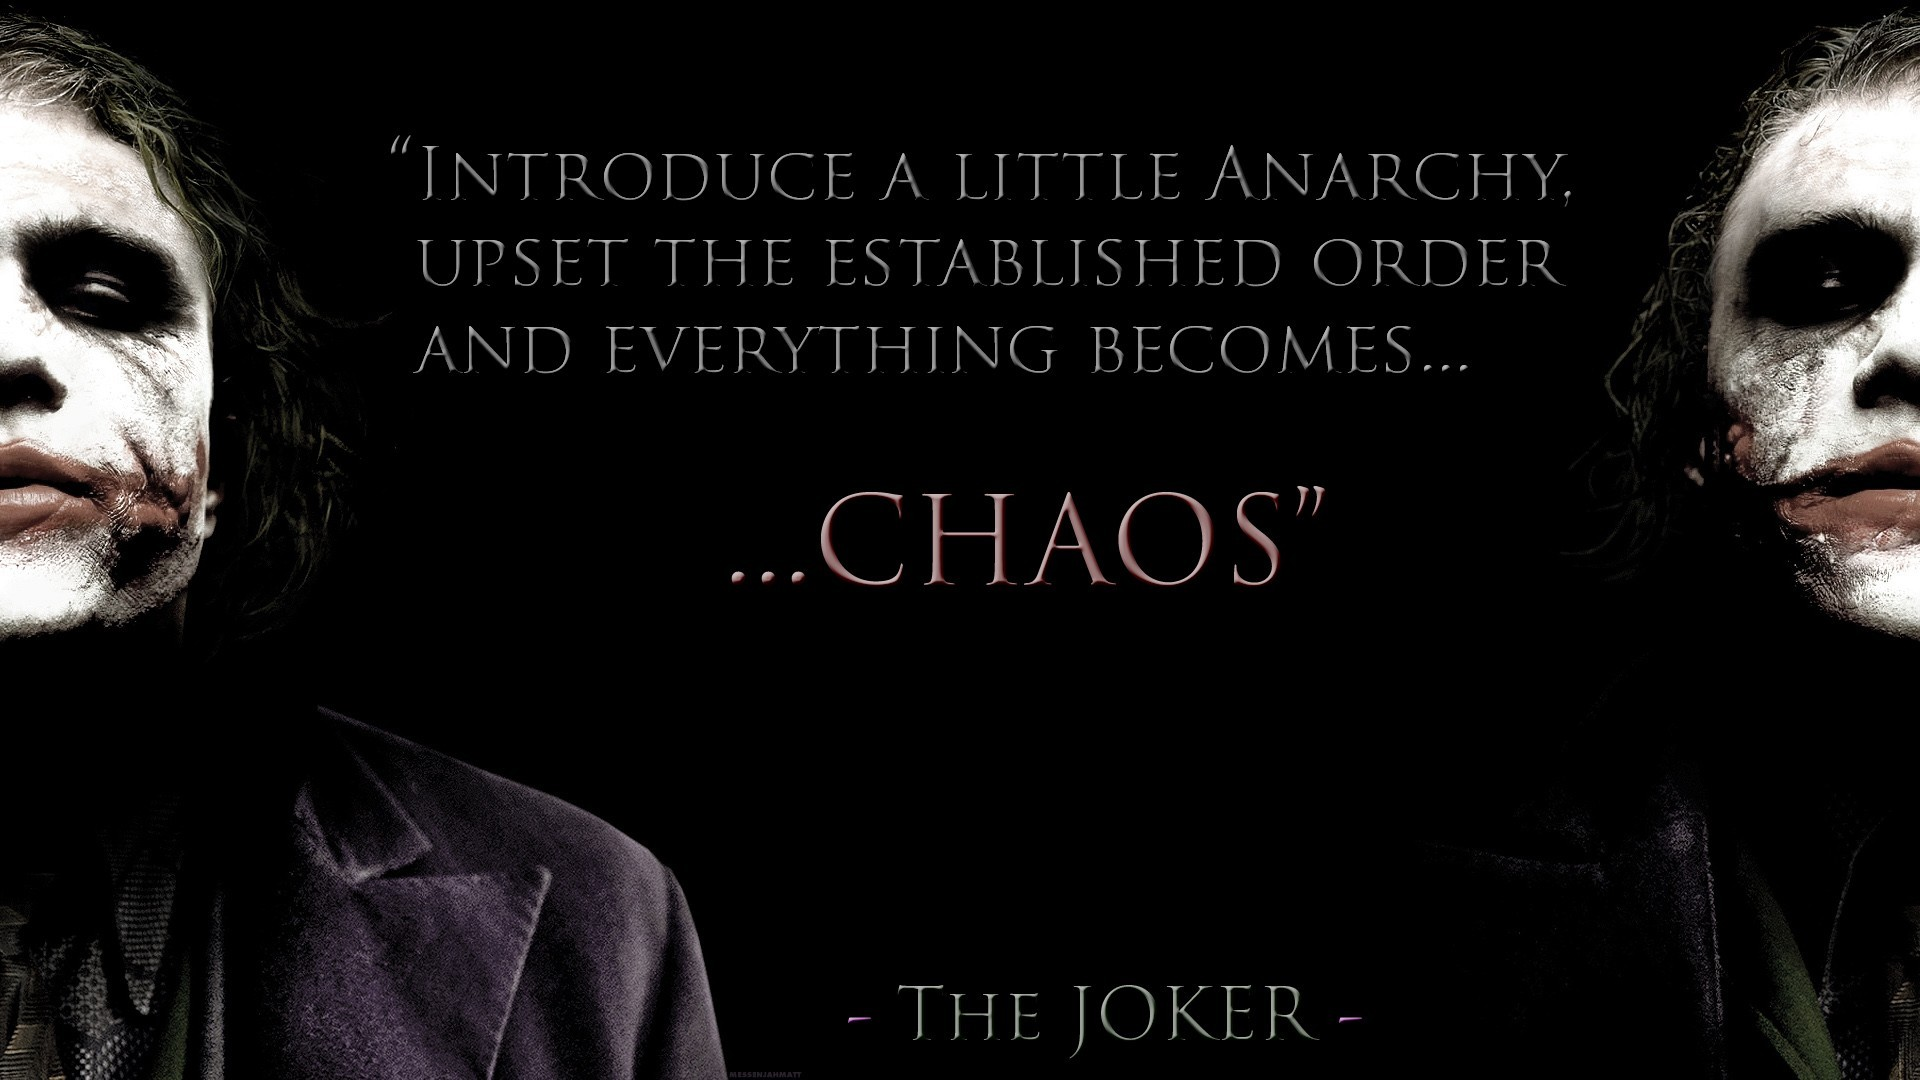 Quote of The Dark Knight | QuoteSaga